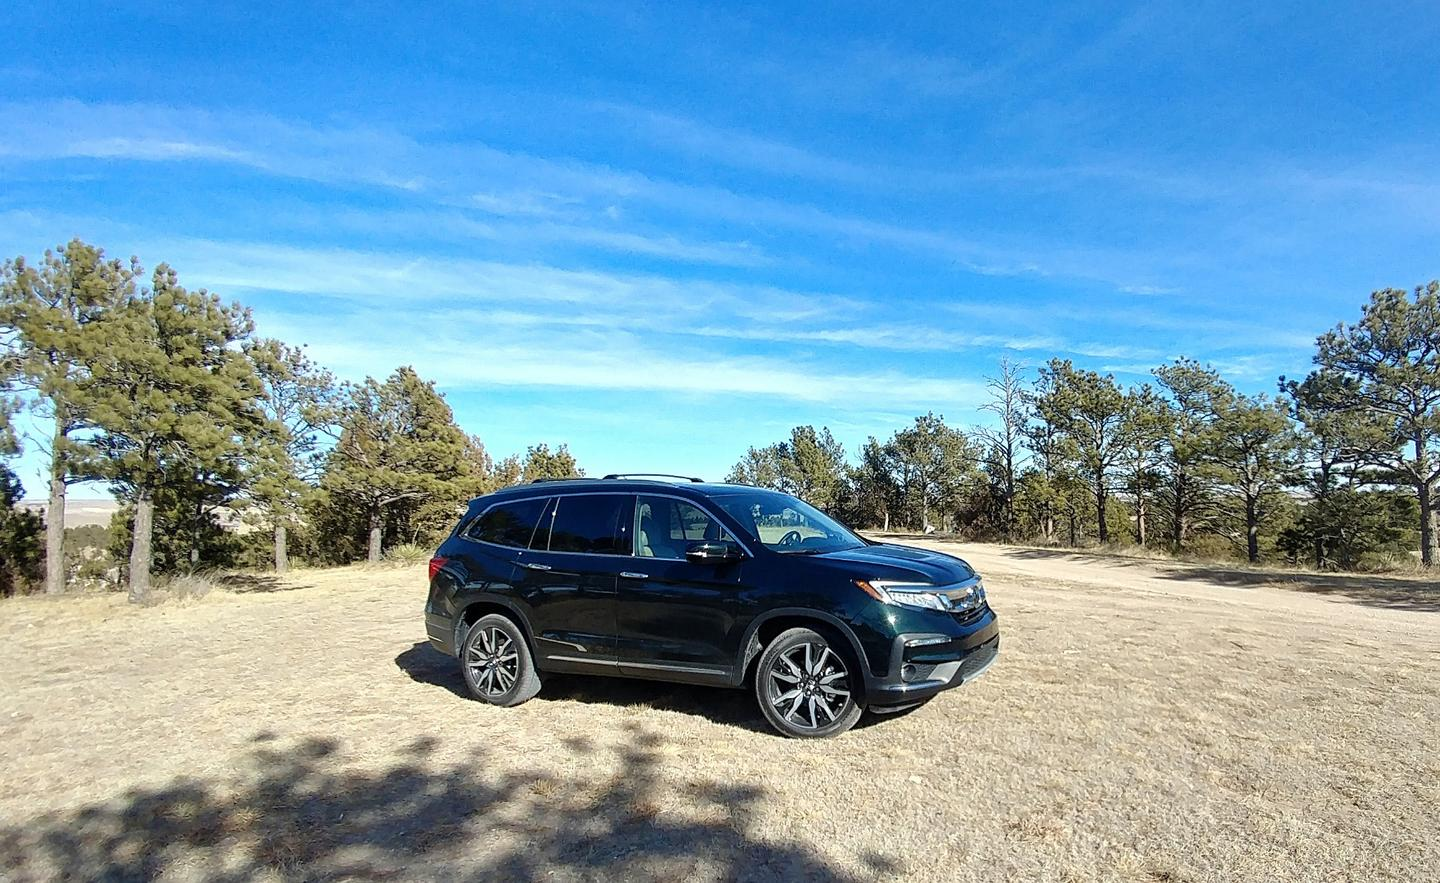 The 2019 Honda Pilot has been refreshed, with an updated look and improved technology